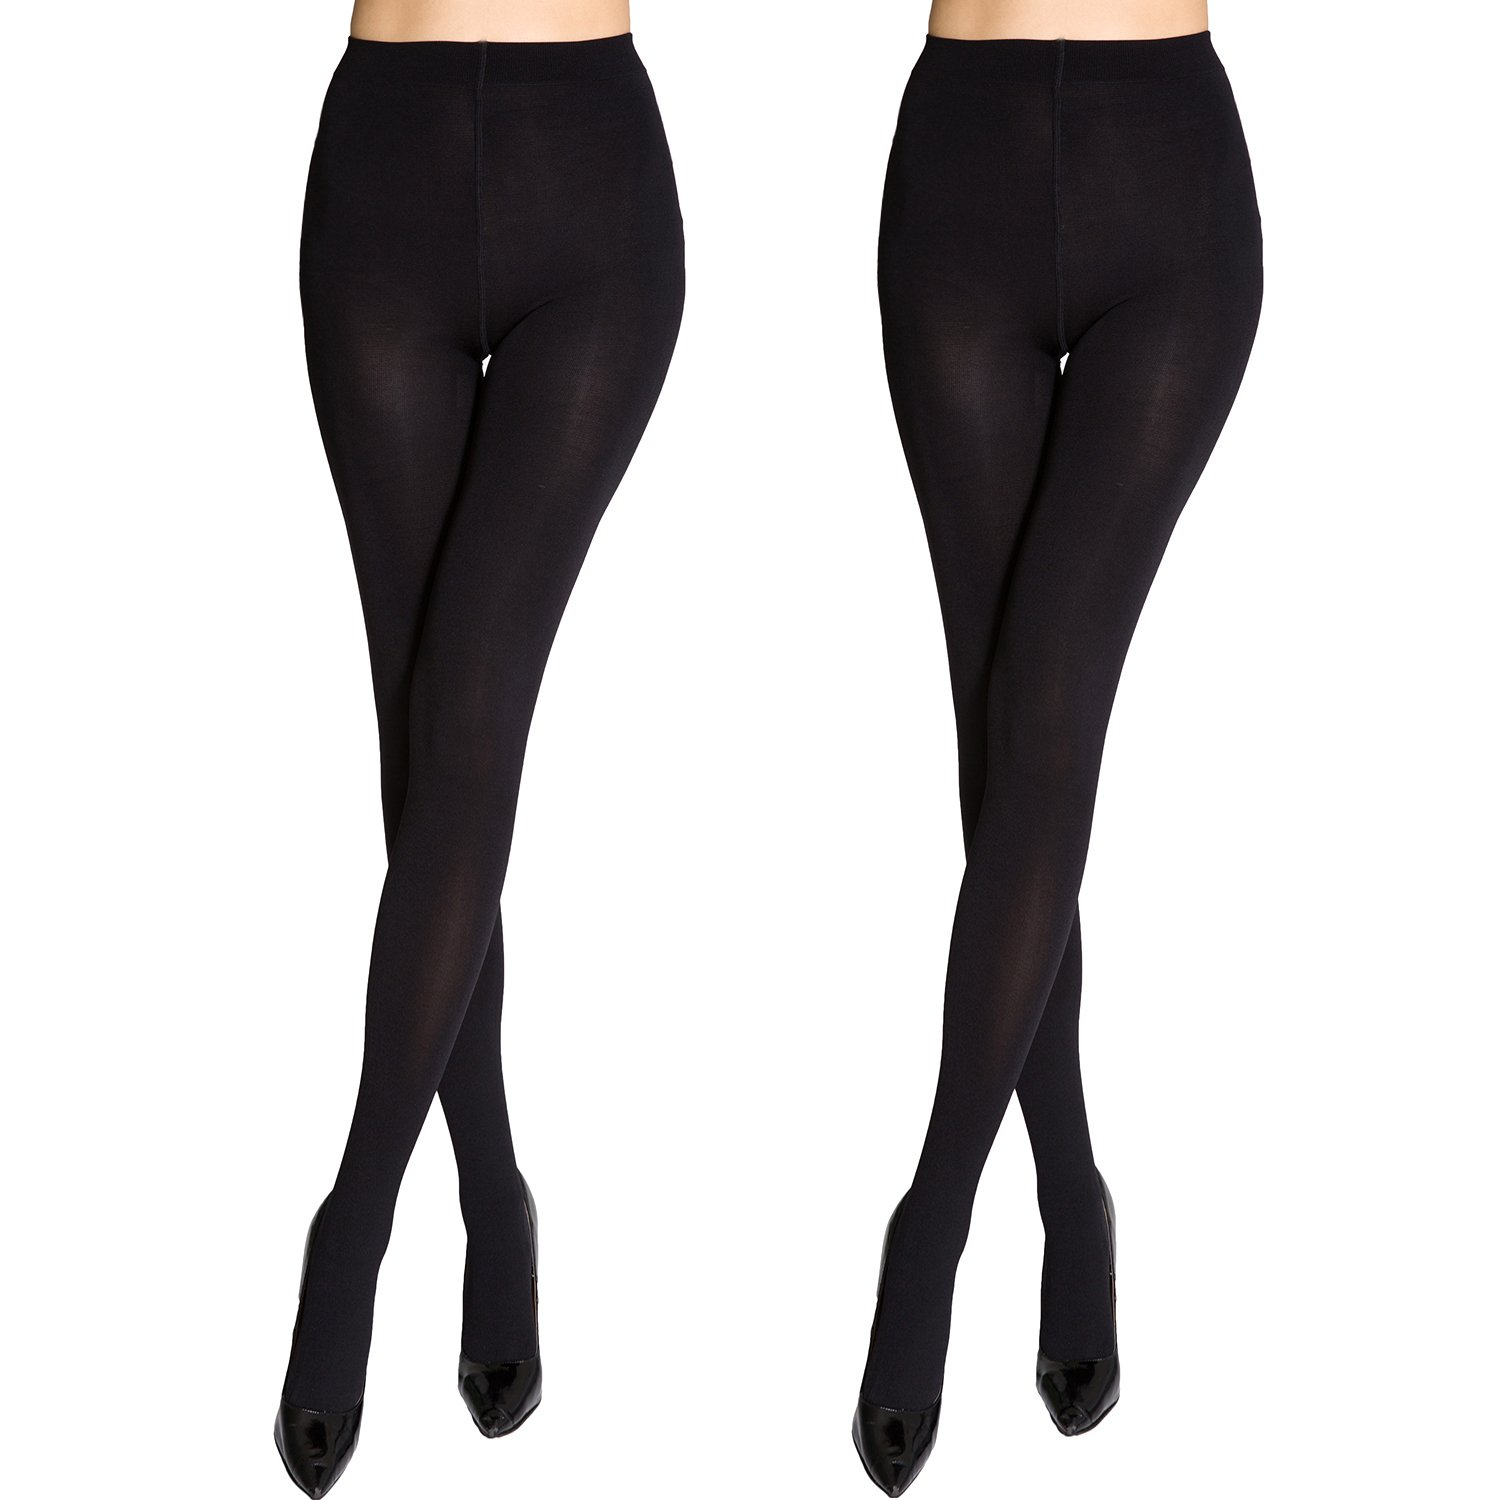 Manzi Lady's Spring and Autumn Black Opaque Superfine Fiber Tights 140 D Size L